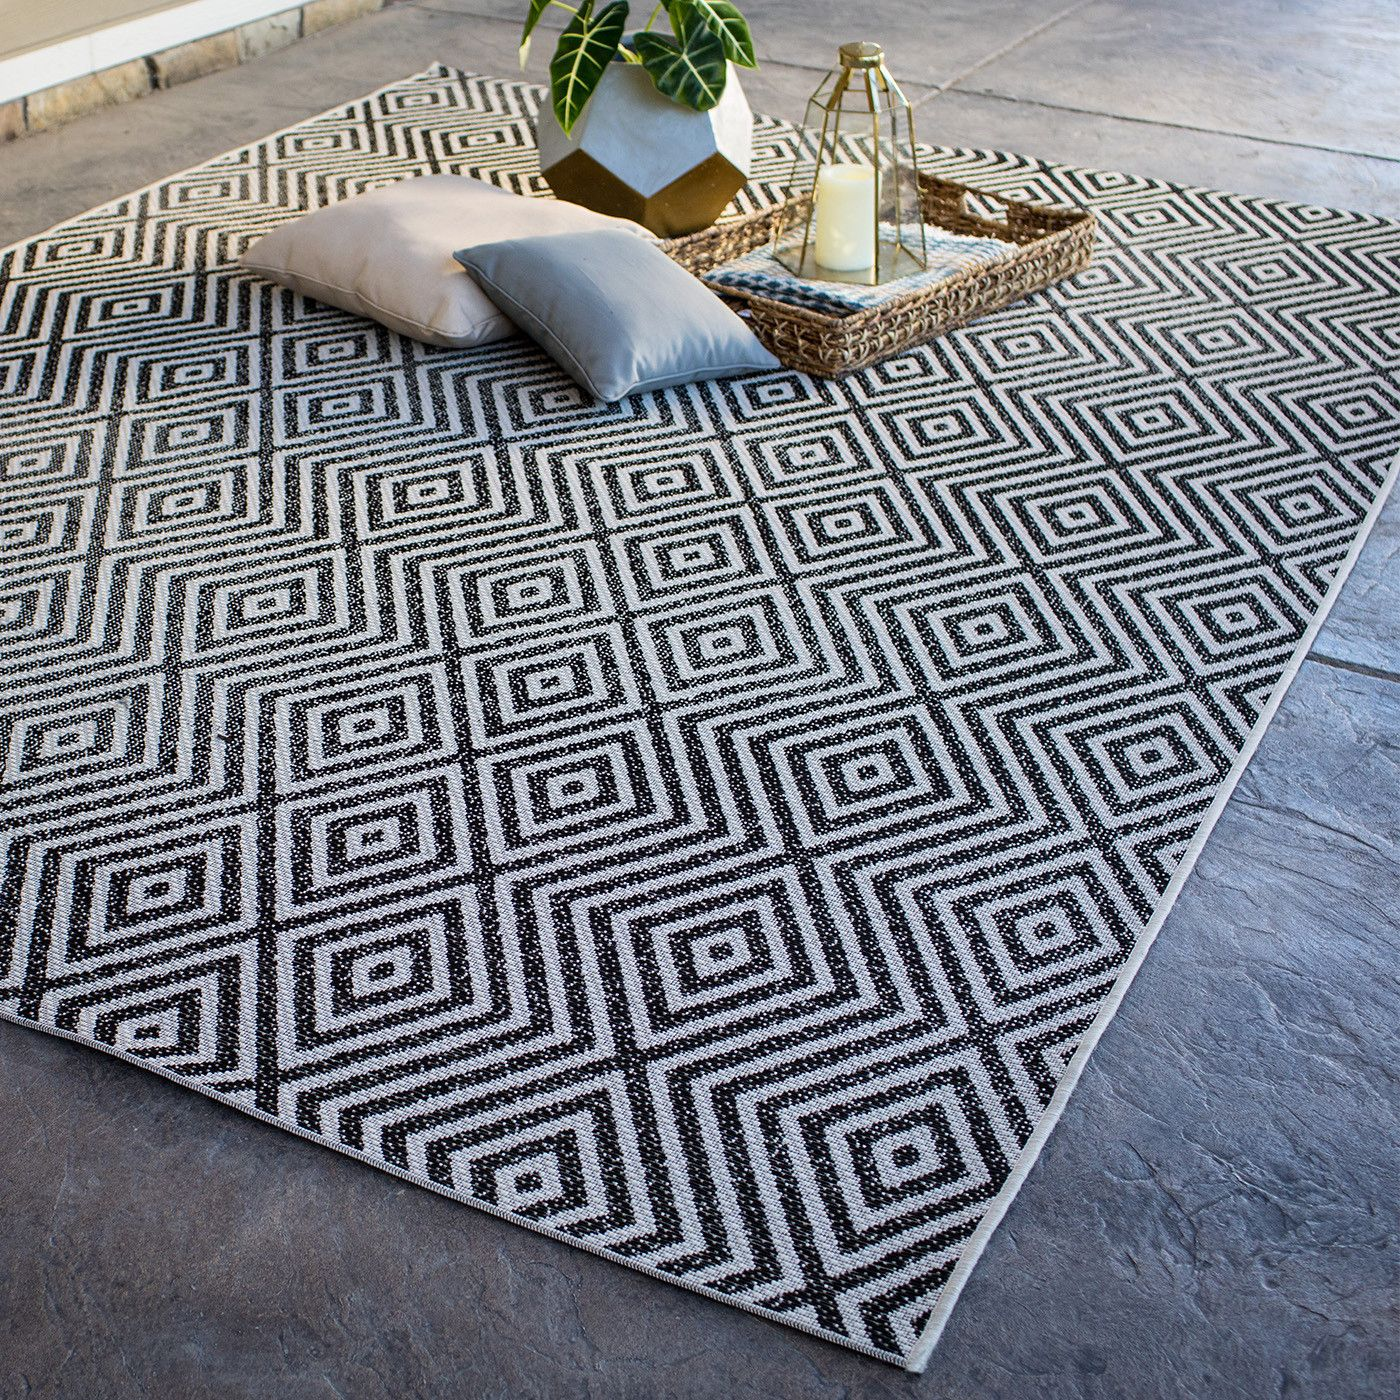 6 Outdoor Rug Trends For Summer Outdoor Rugs Outdoor Rugs Patio